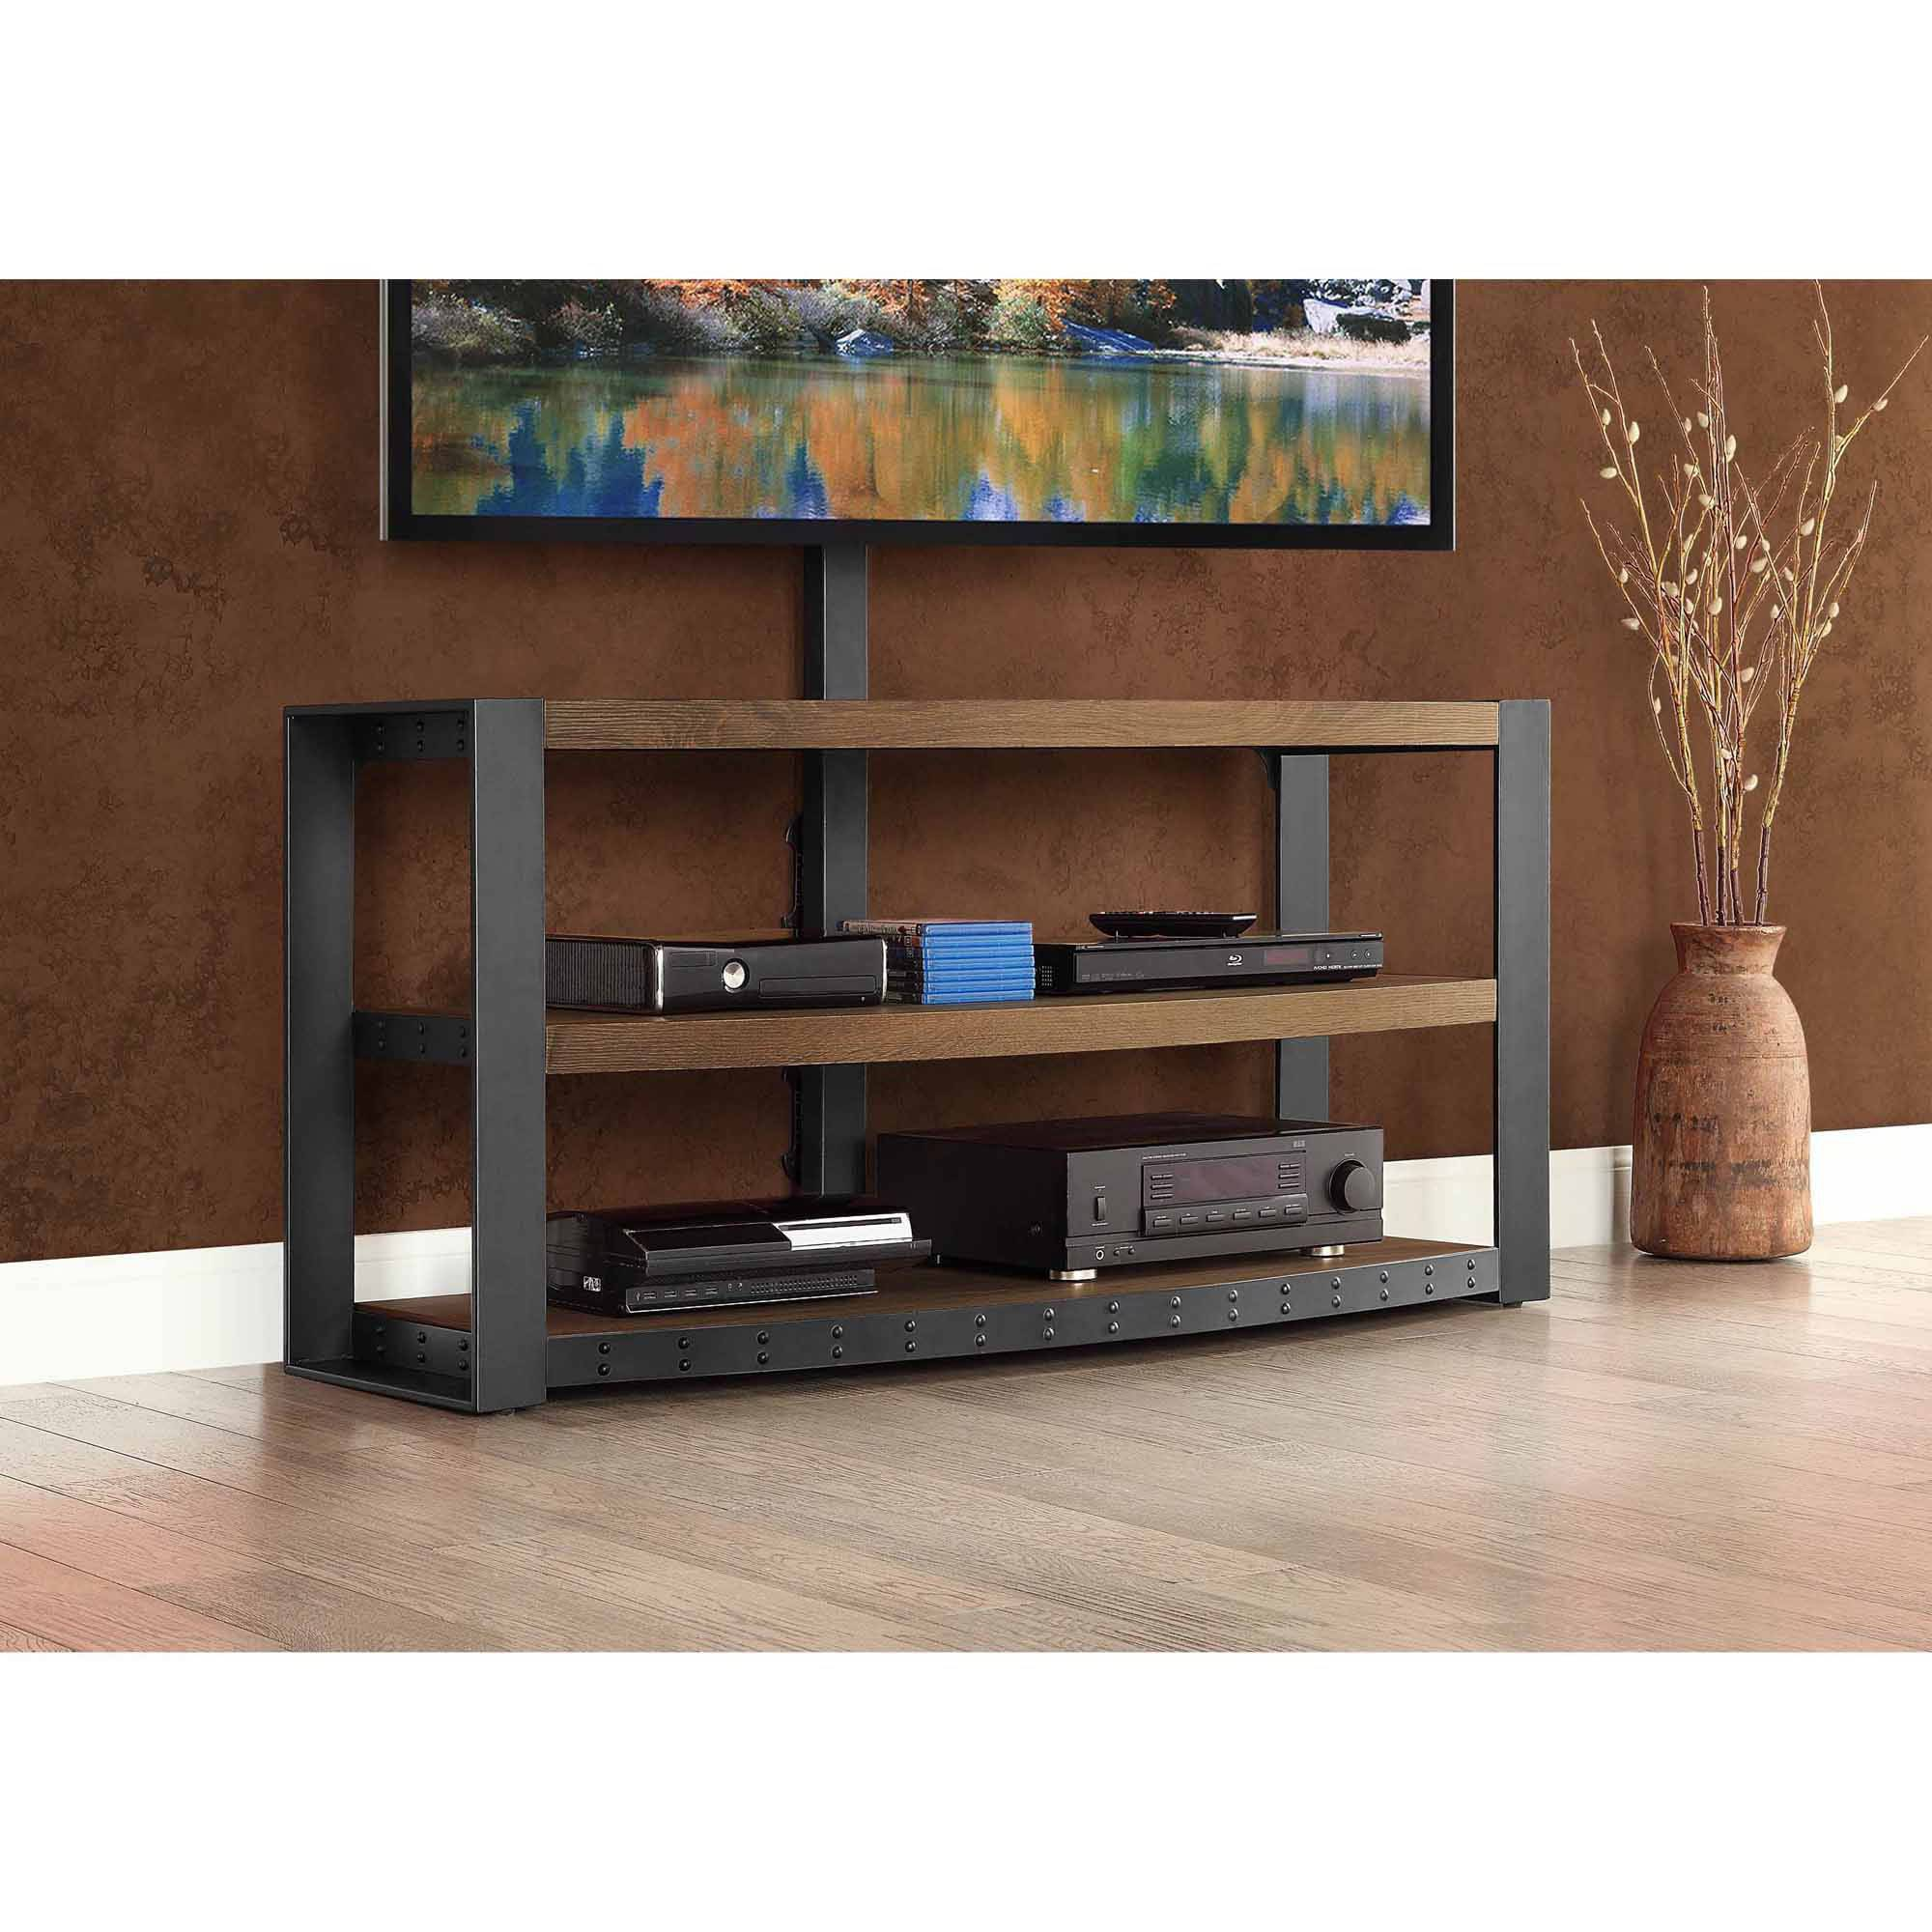 Santa Fe 3 In 1 For Stand Tv Brown Tvs Up To 65 108 Top Reviews